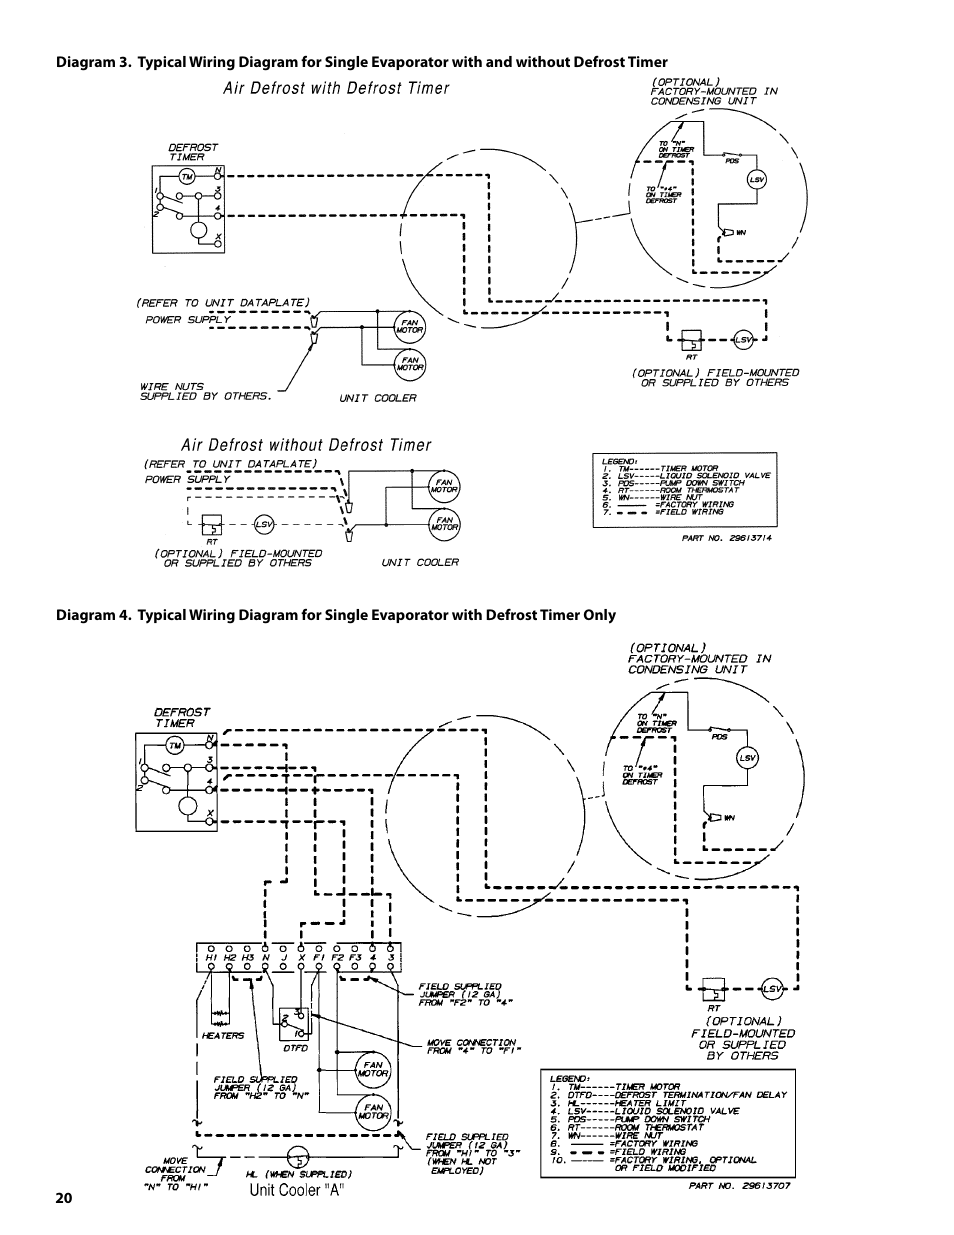 medium resolution of in model wiring walk diagram cooler bohn bht030h2b wiring diagram bohn walk in freezer wiring diagram bohn walk in freezer wiring diagram